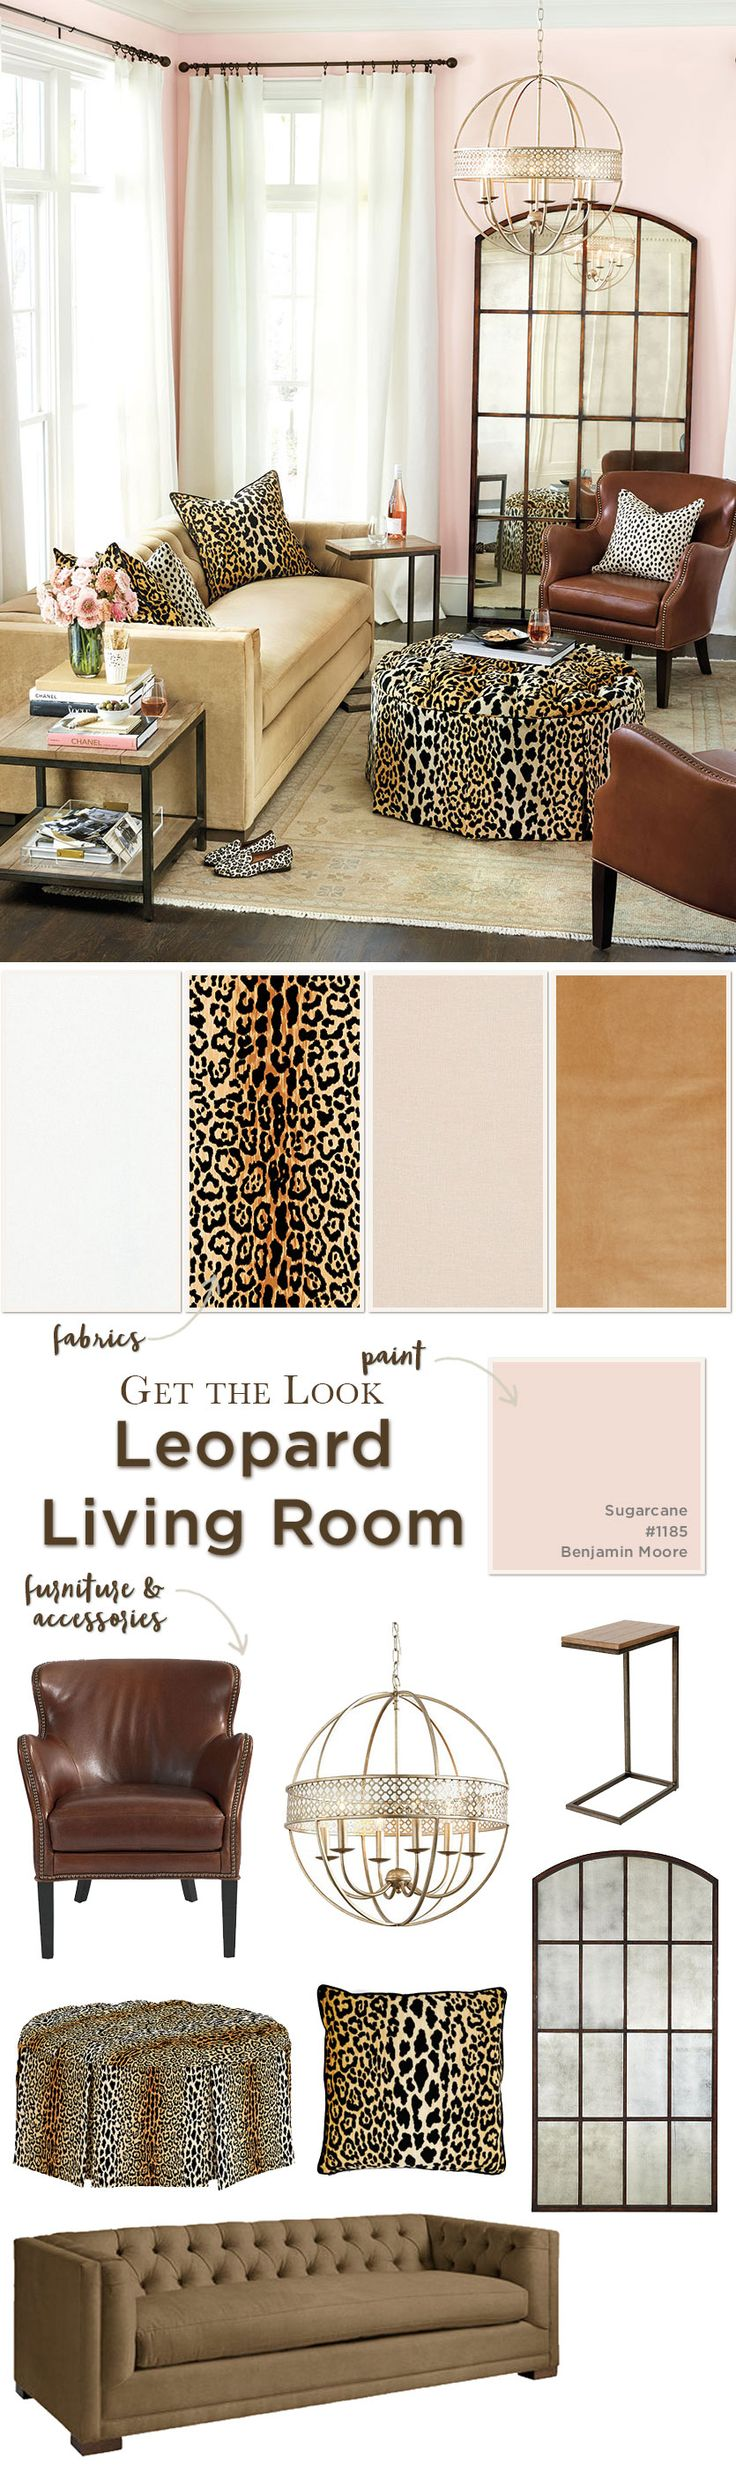 Pink and leopard print living room